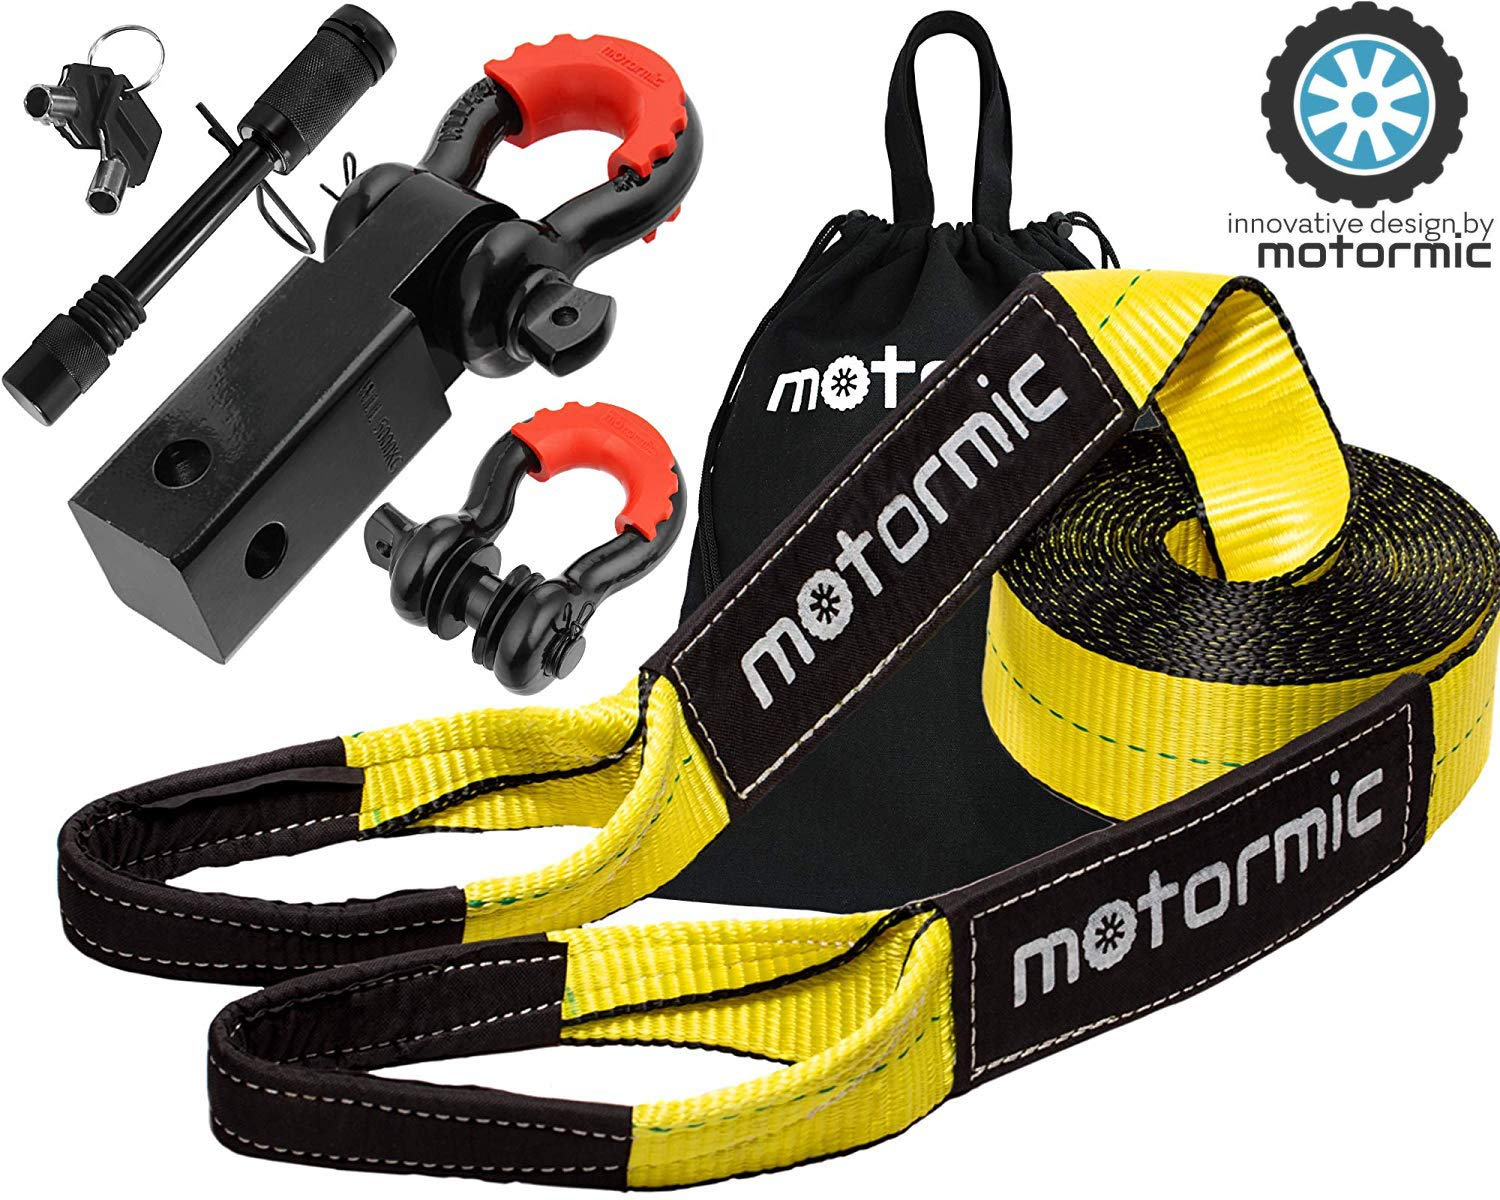 motormic Tow Strap Recovery Kit - 30 ft x 3'' (30,000 lbs.) Rope + 2'' Shackle Hitch Receiver + 5/8'' Locking Pin + 3/4'' D Ring Shackles with Safety Ring + Heavy Duty Bag - Off Road Pick Up Towing by motormic